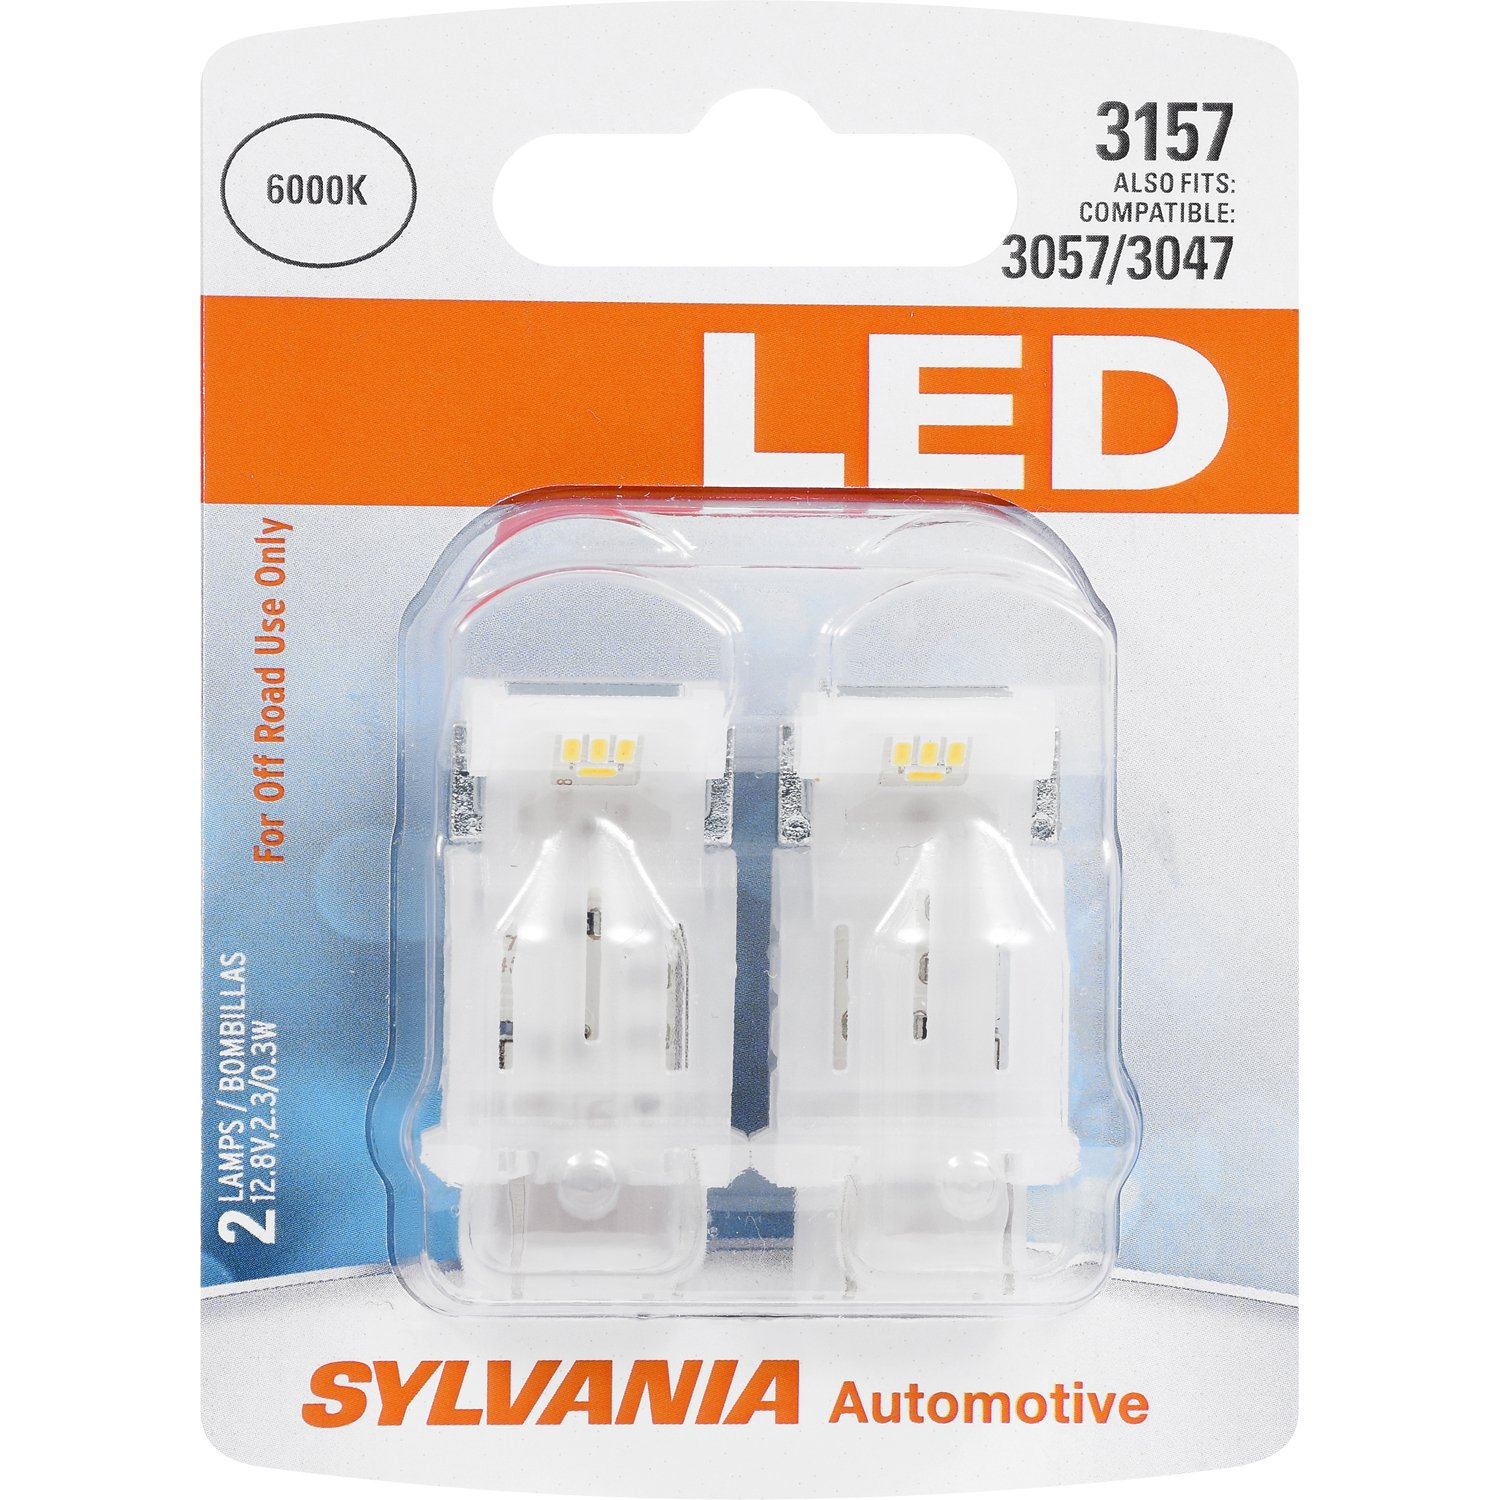 SYLVANIA - 3157 LED White Mini Bulb - Bright LED Bulb, Ideal for Daytime Running Lights (DRL) and Back-Up/Reverse Lights (Contains 2 Bulbs)